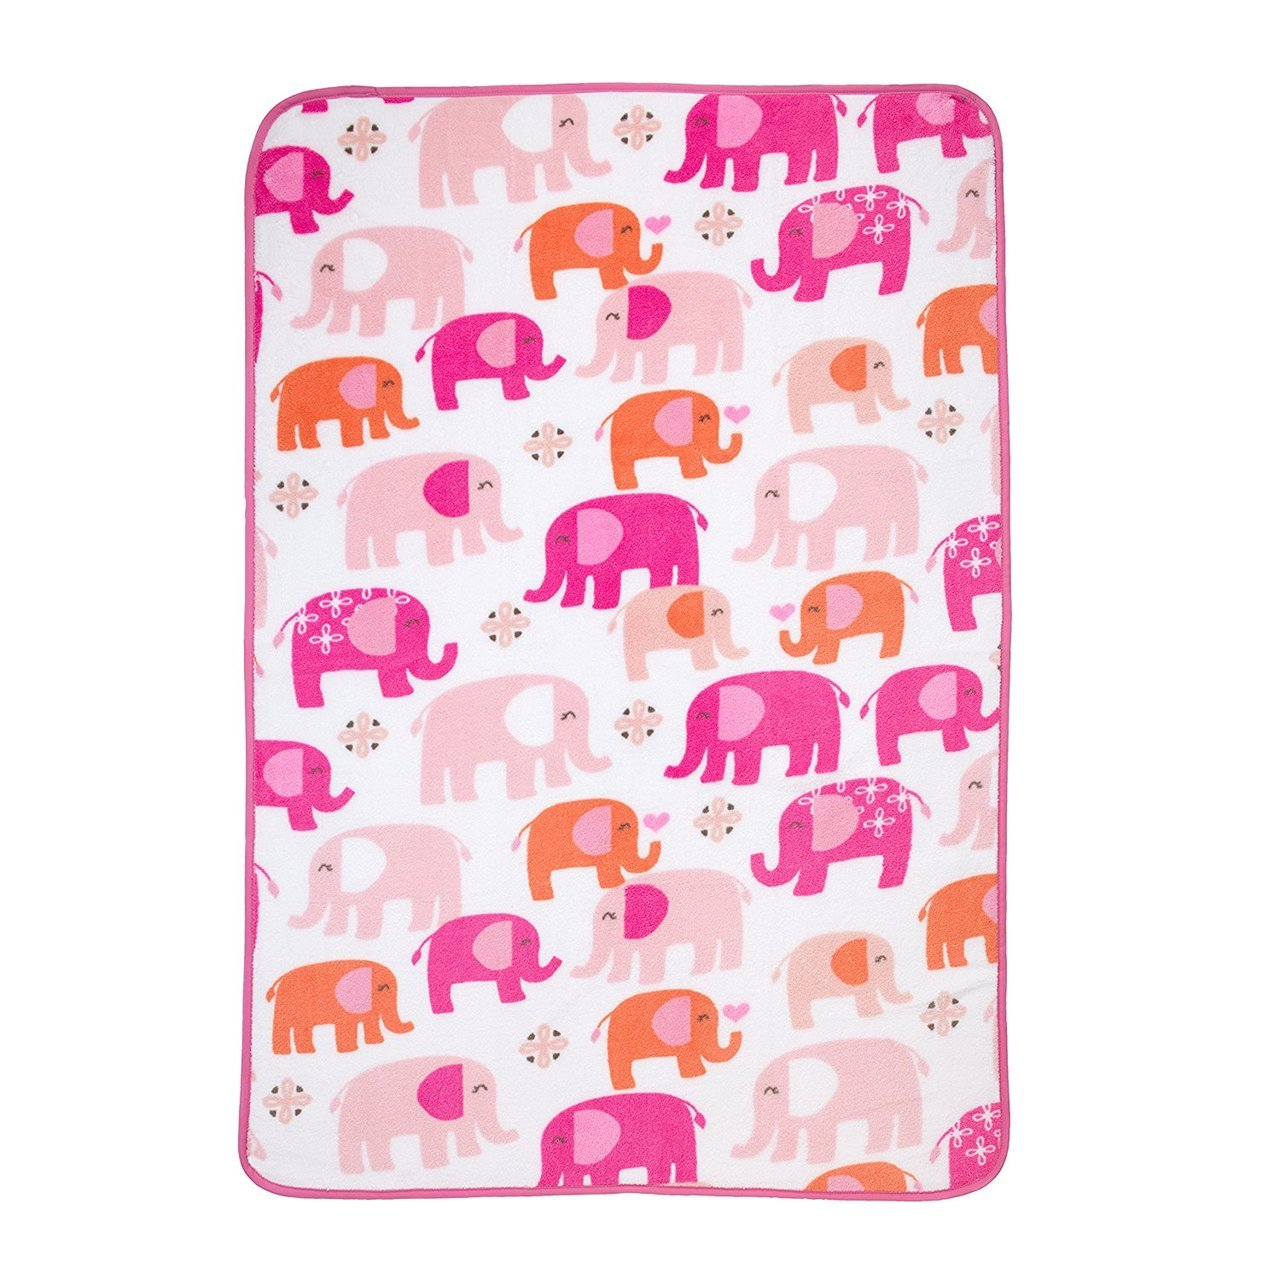 Carter's Elephant Walk Blanket